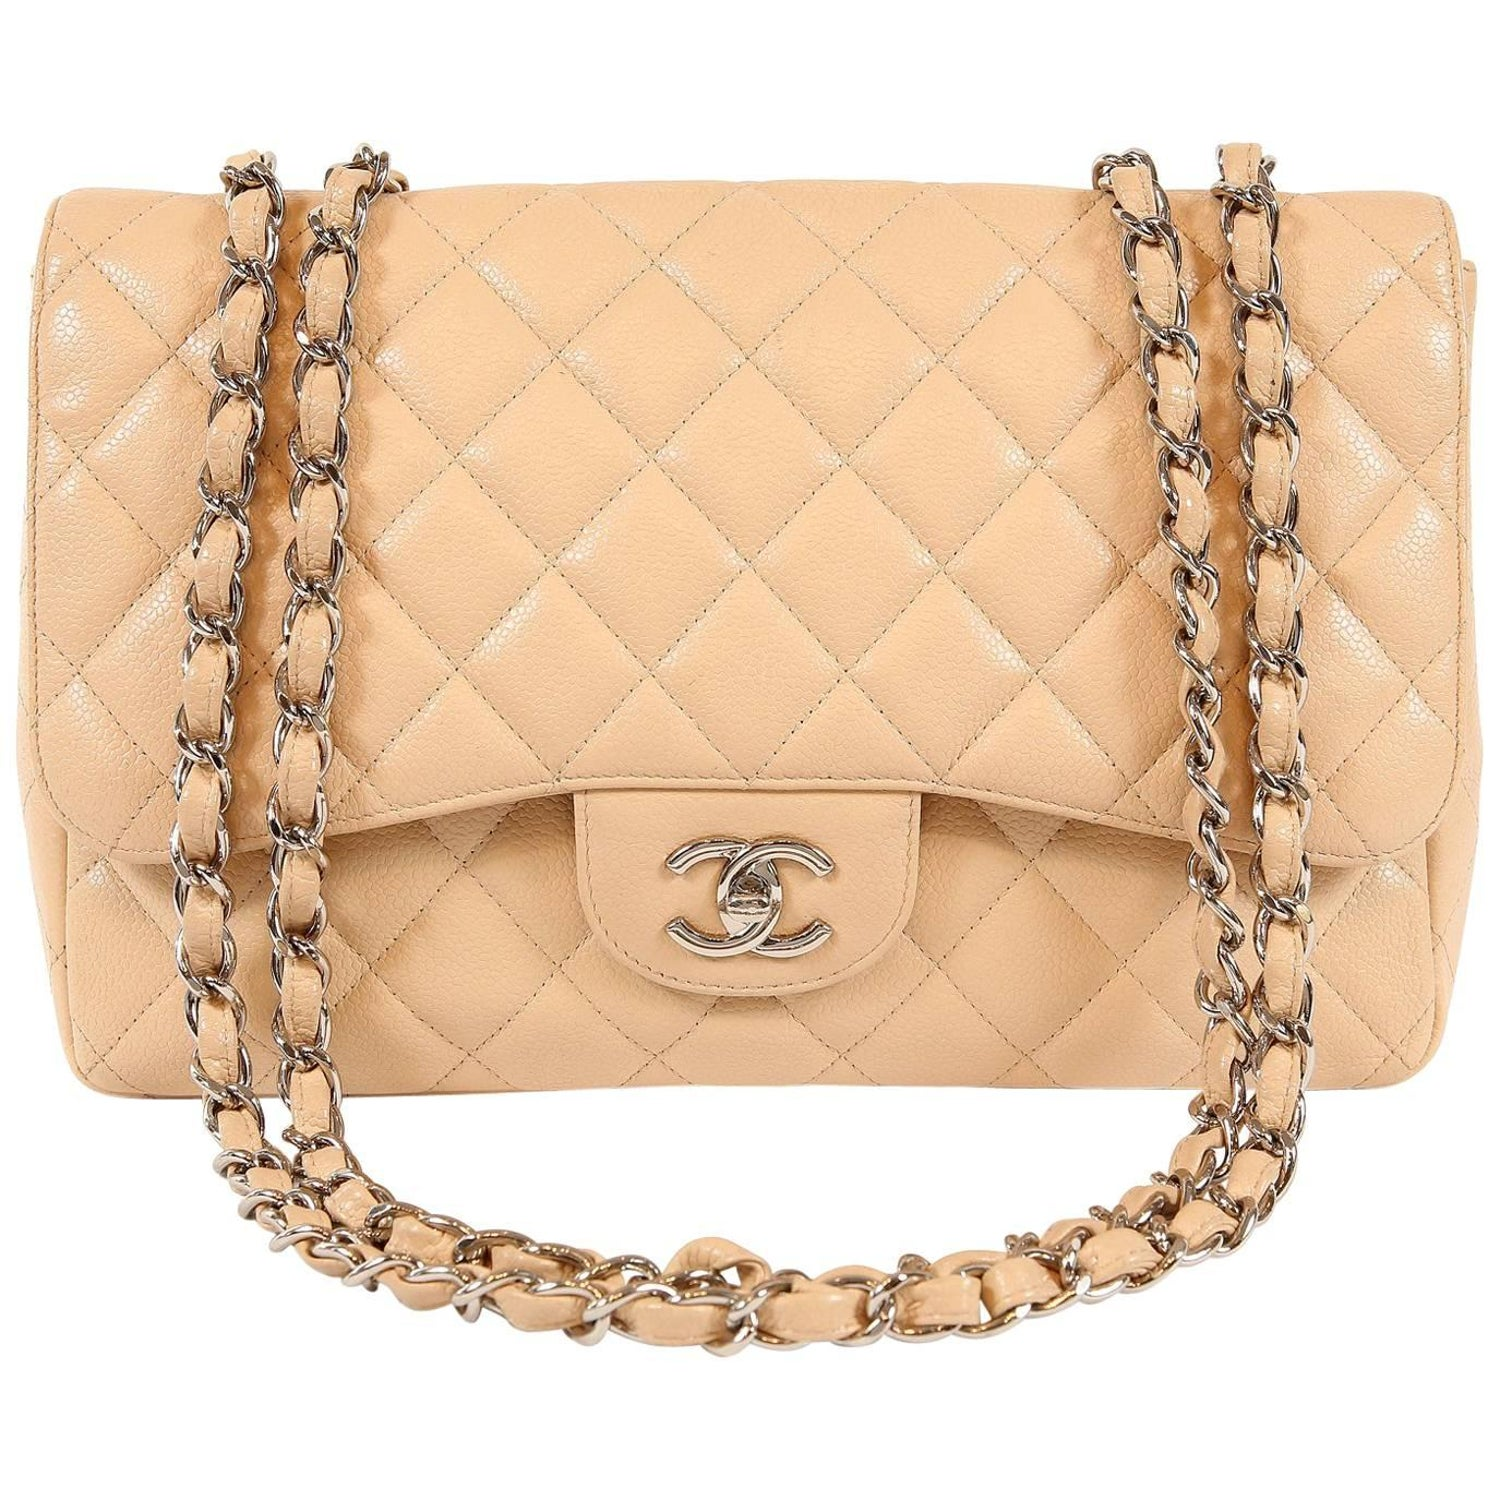 2a3513fa149d Chanel Beige Clair Caviar Leather Jumbo Classic Flap Bag with Silver HW at  1stdibs